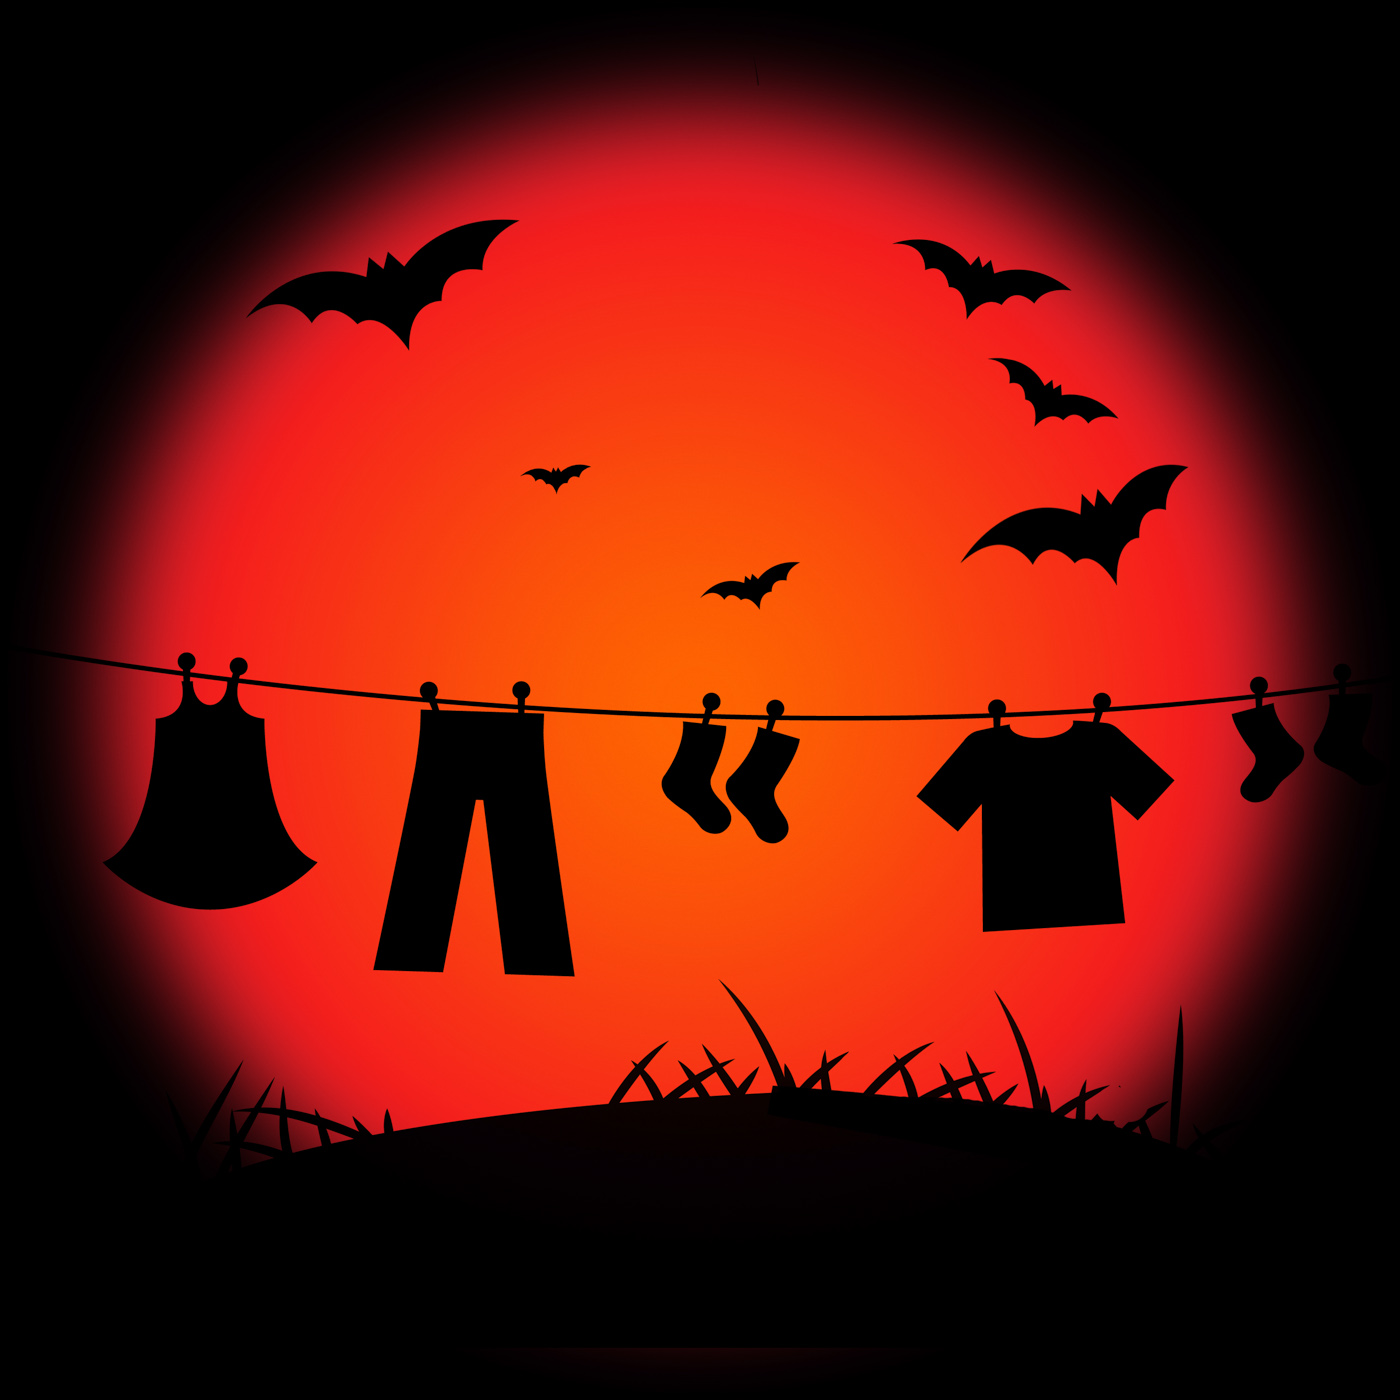 Halloween bat represents trick or treat and abstract photo